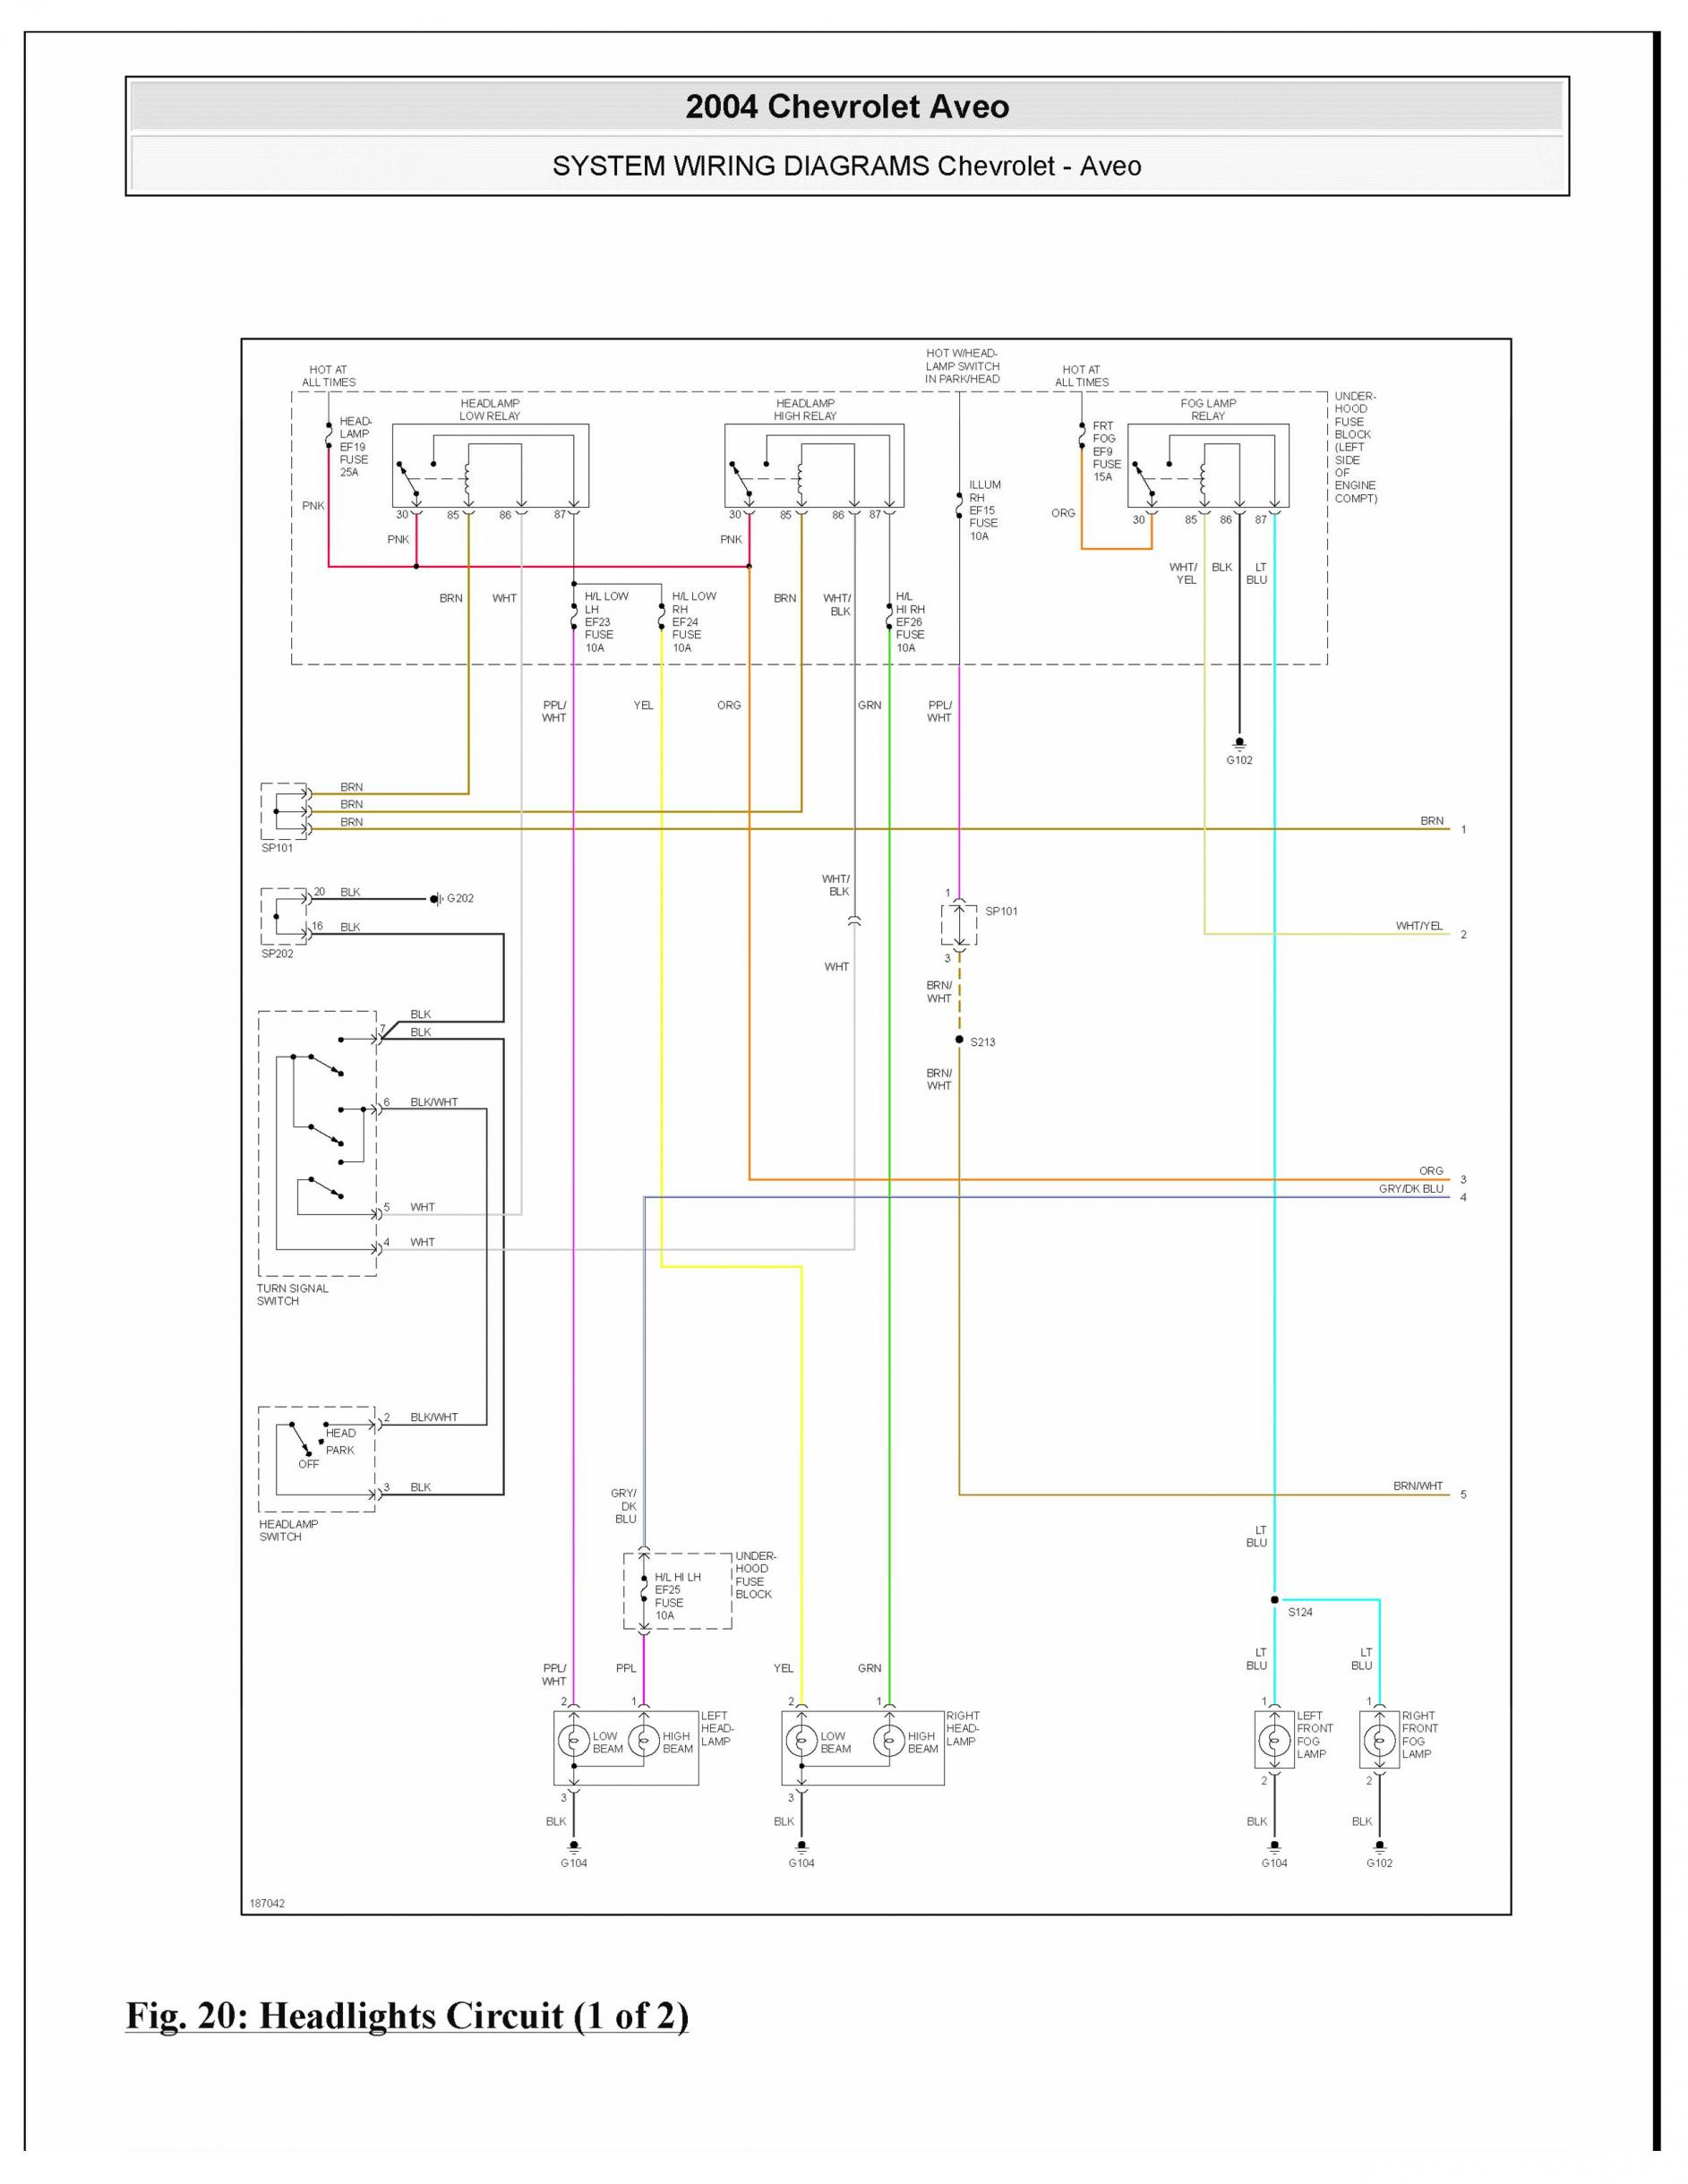 2004 Chevy Aveo Wiring Diagram Wiring Library